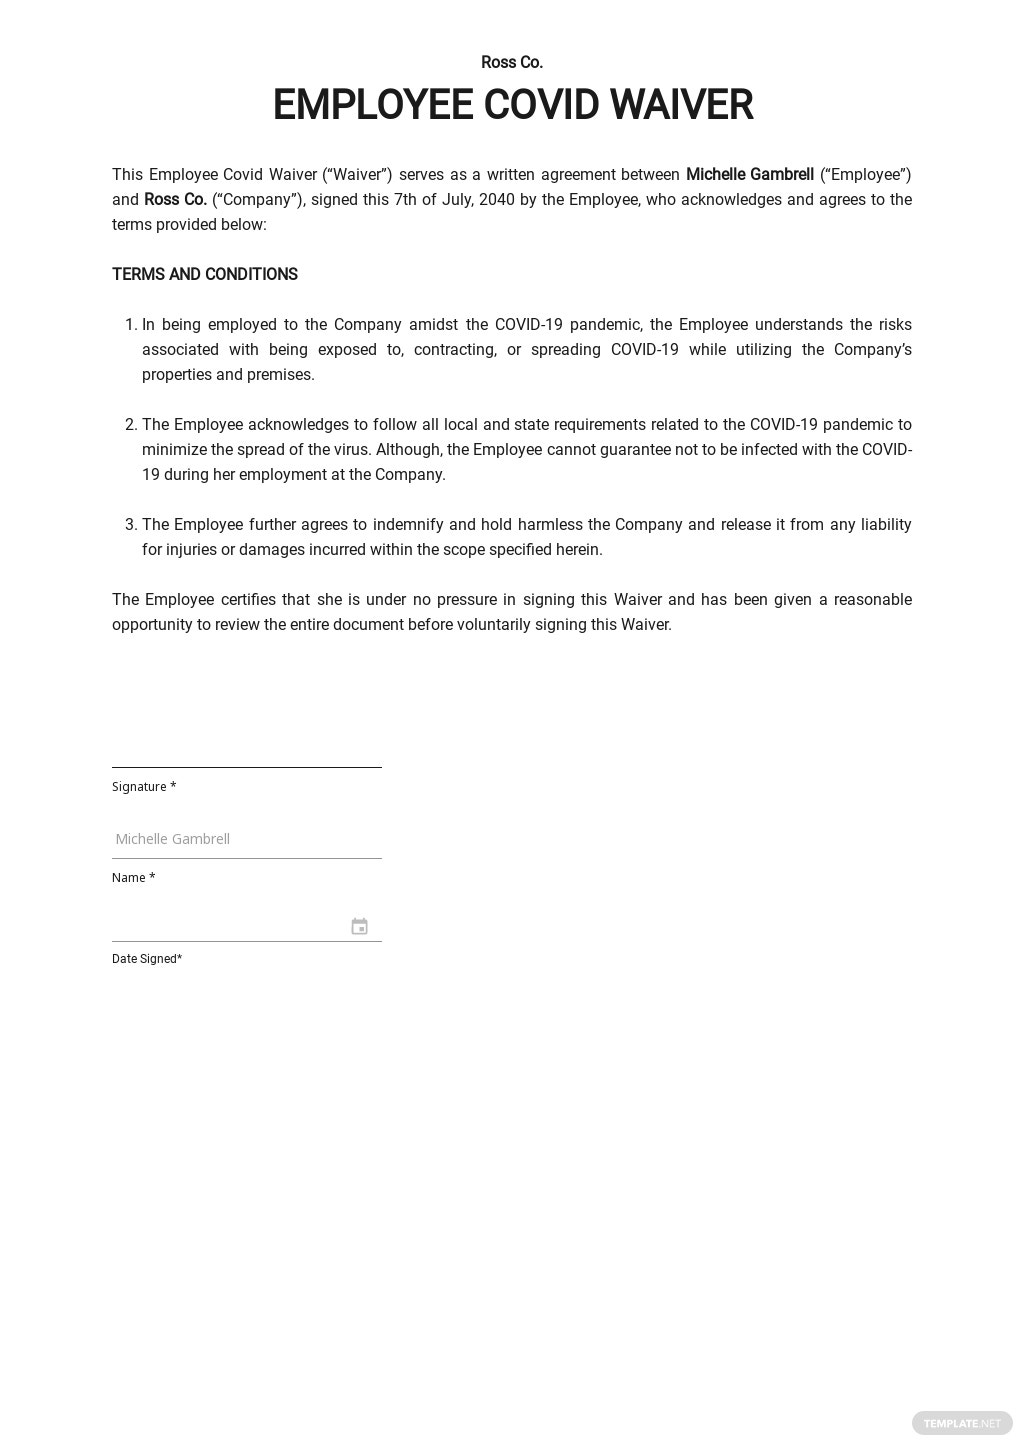 Employee Covid Waiver Template